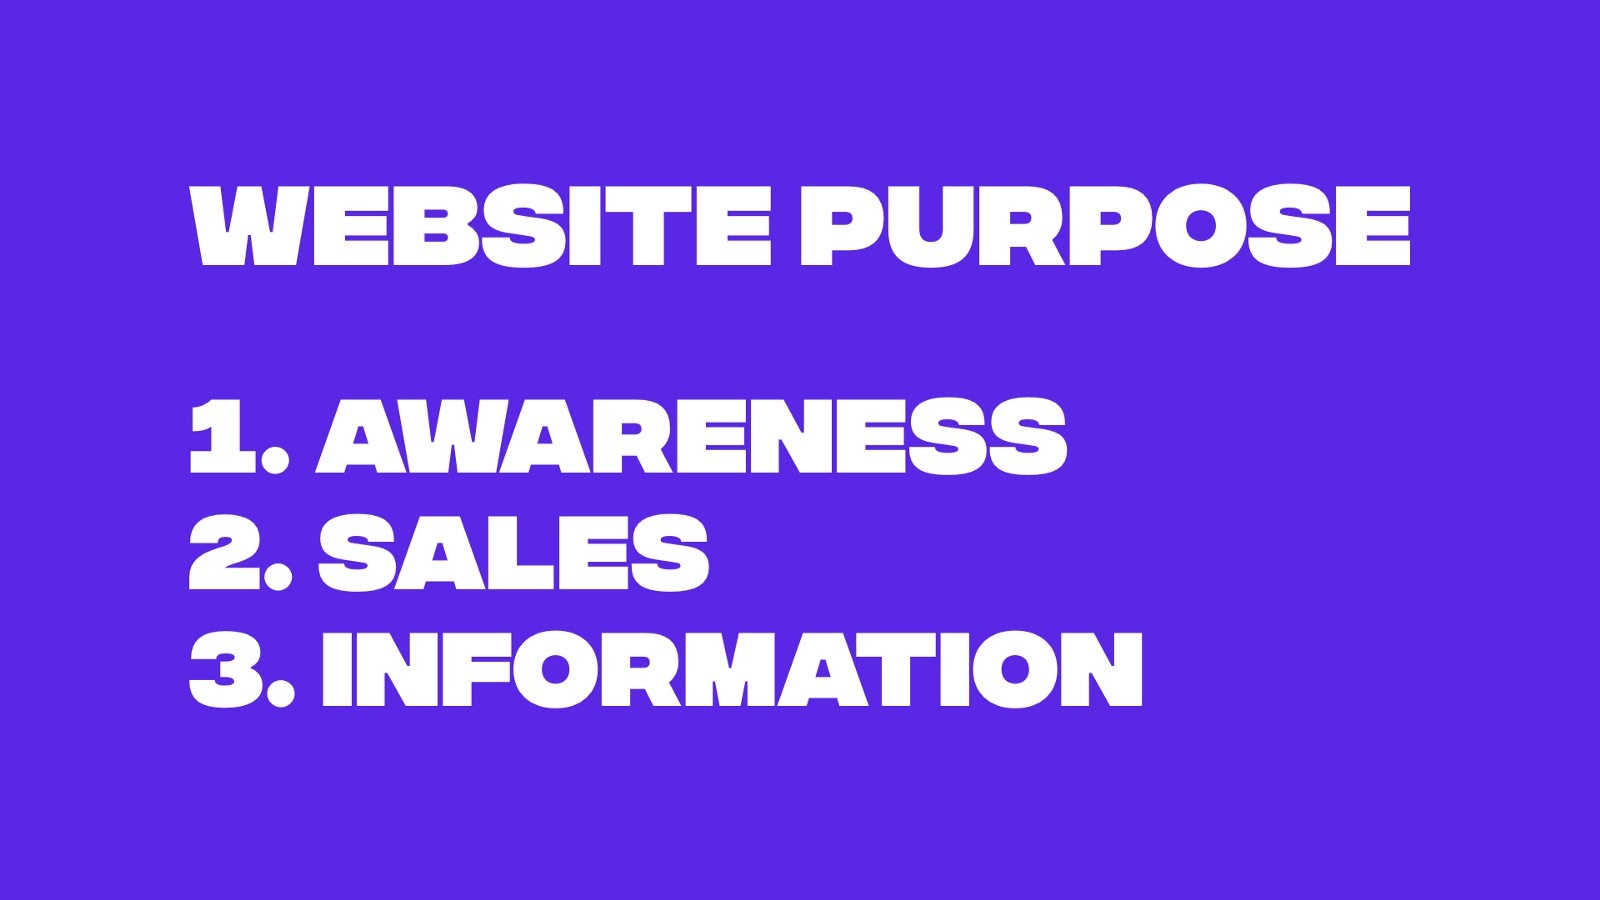 The 3 main purposes of a website